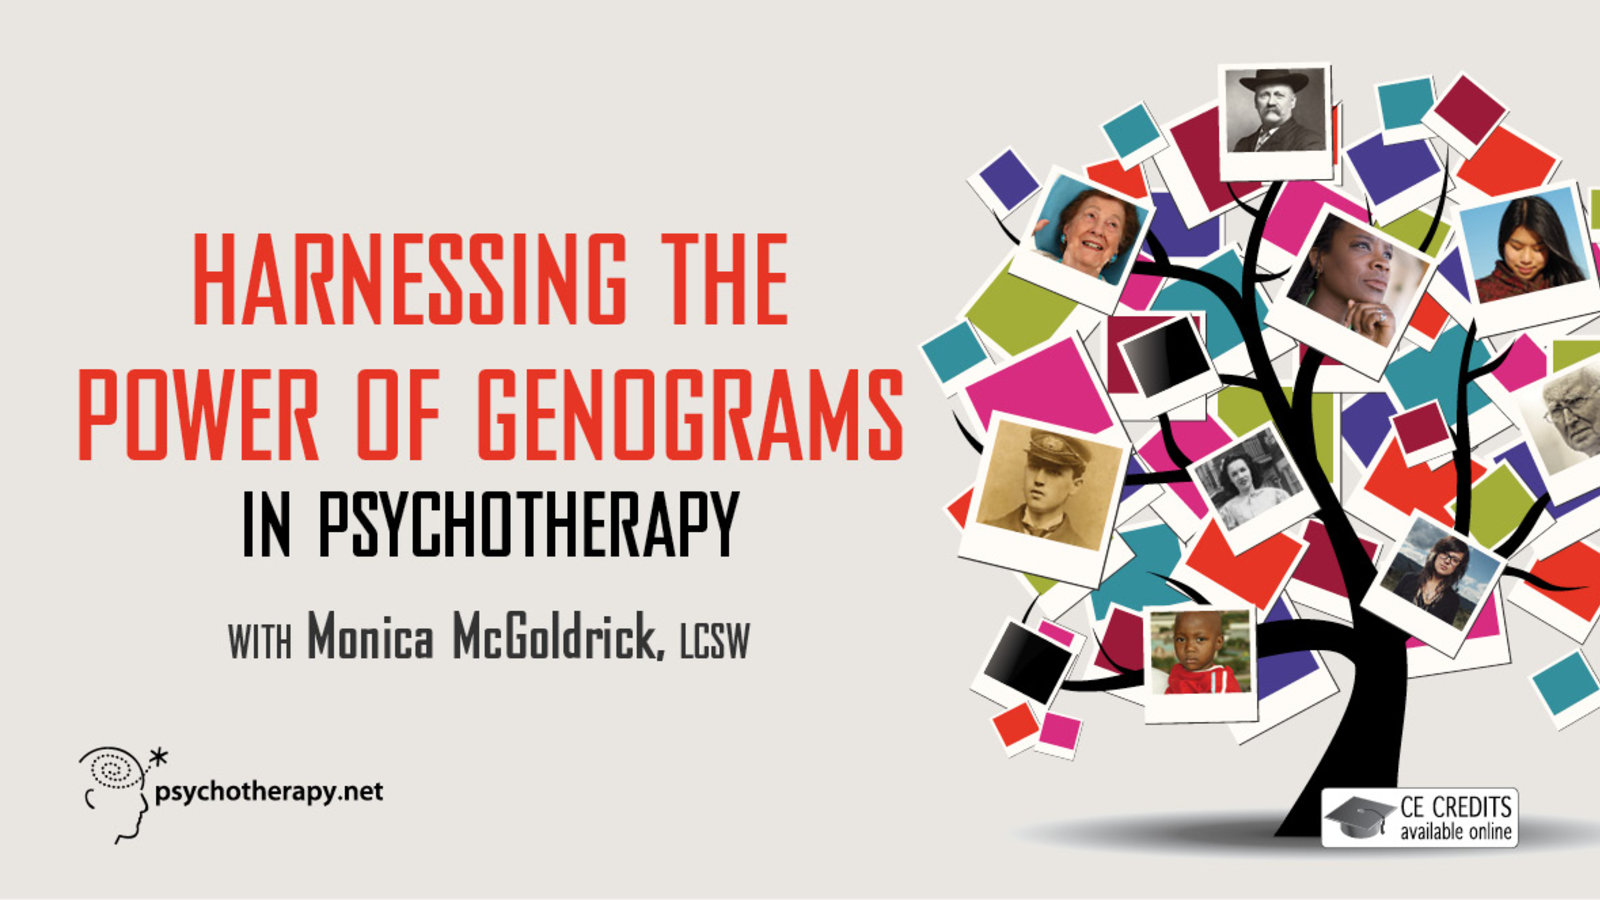 Harnessing the Power of Genograms in Psychotherapy - With Monica McGoldrick